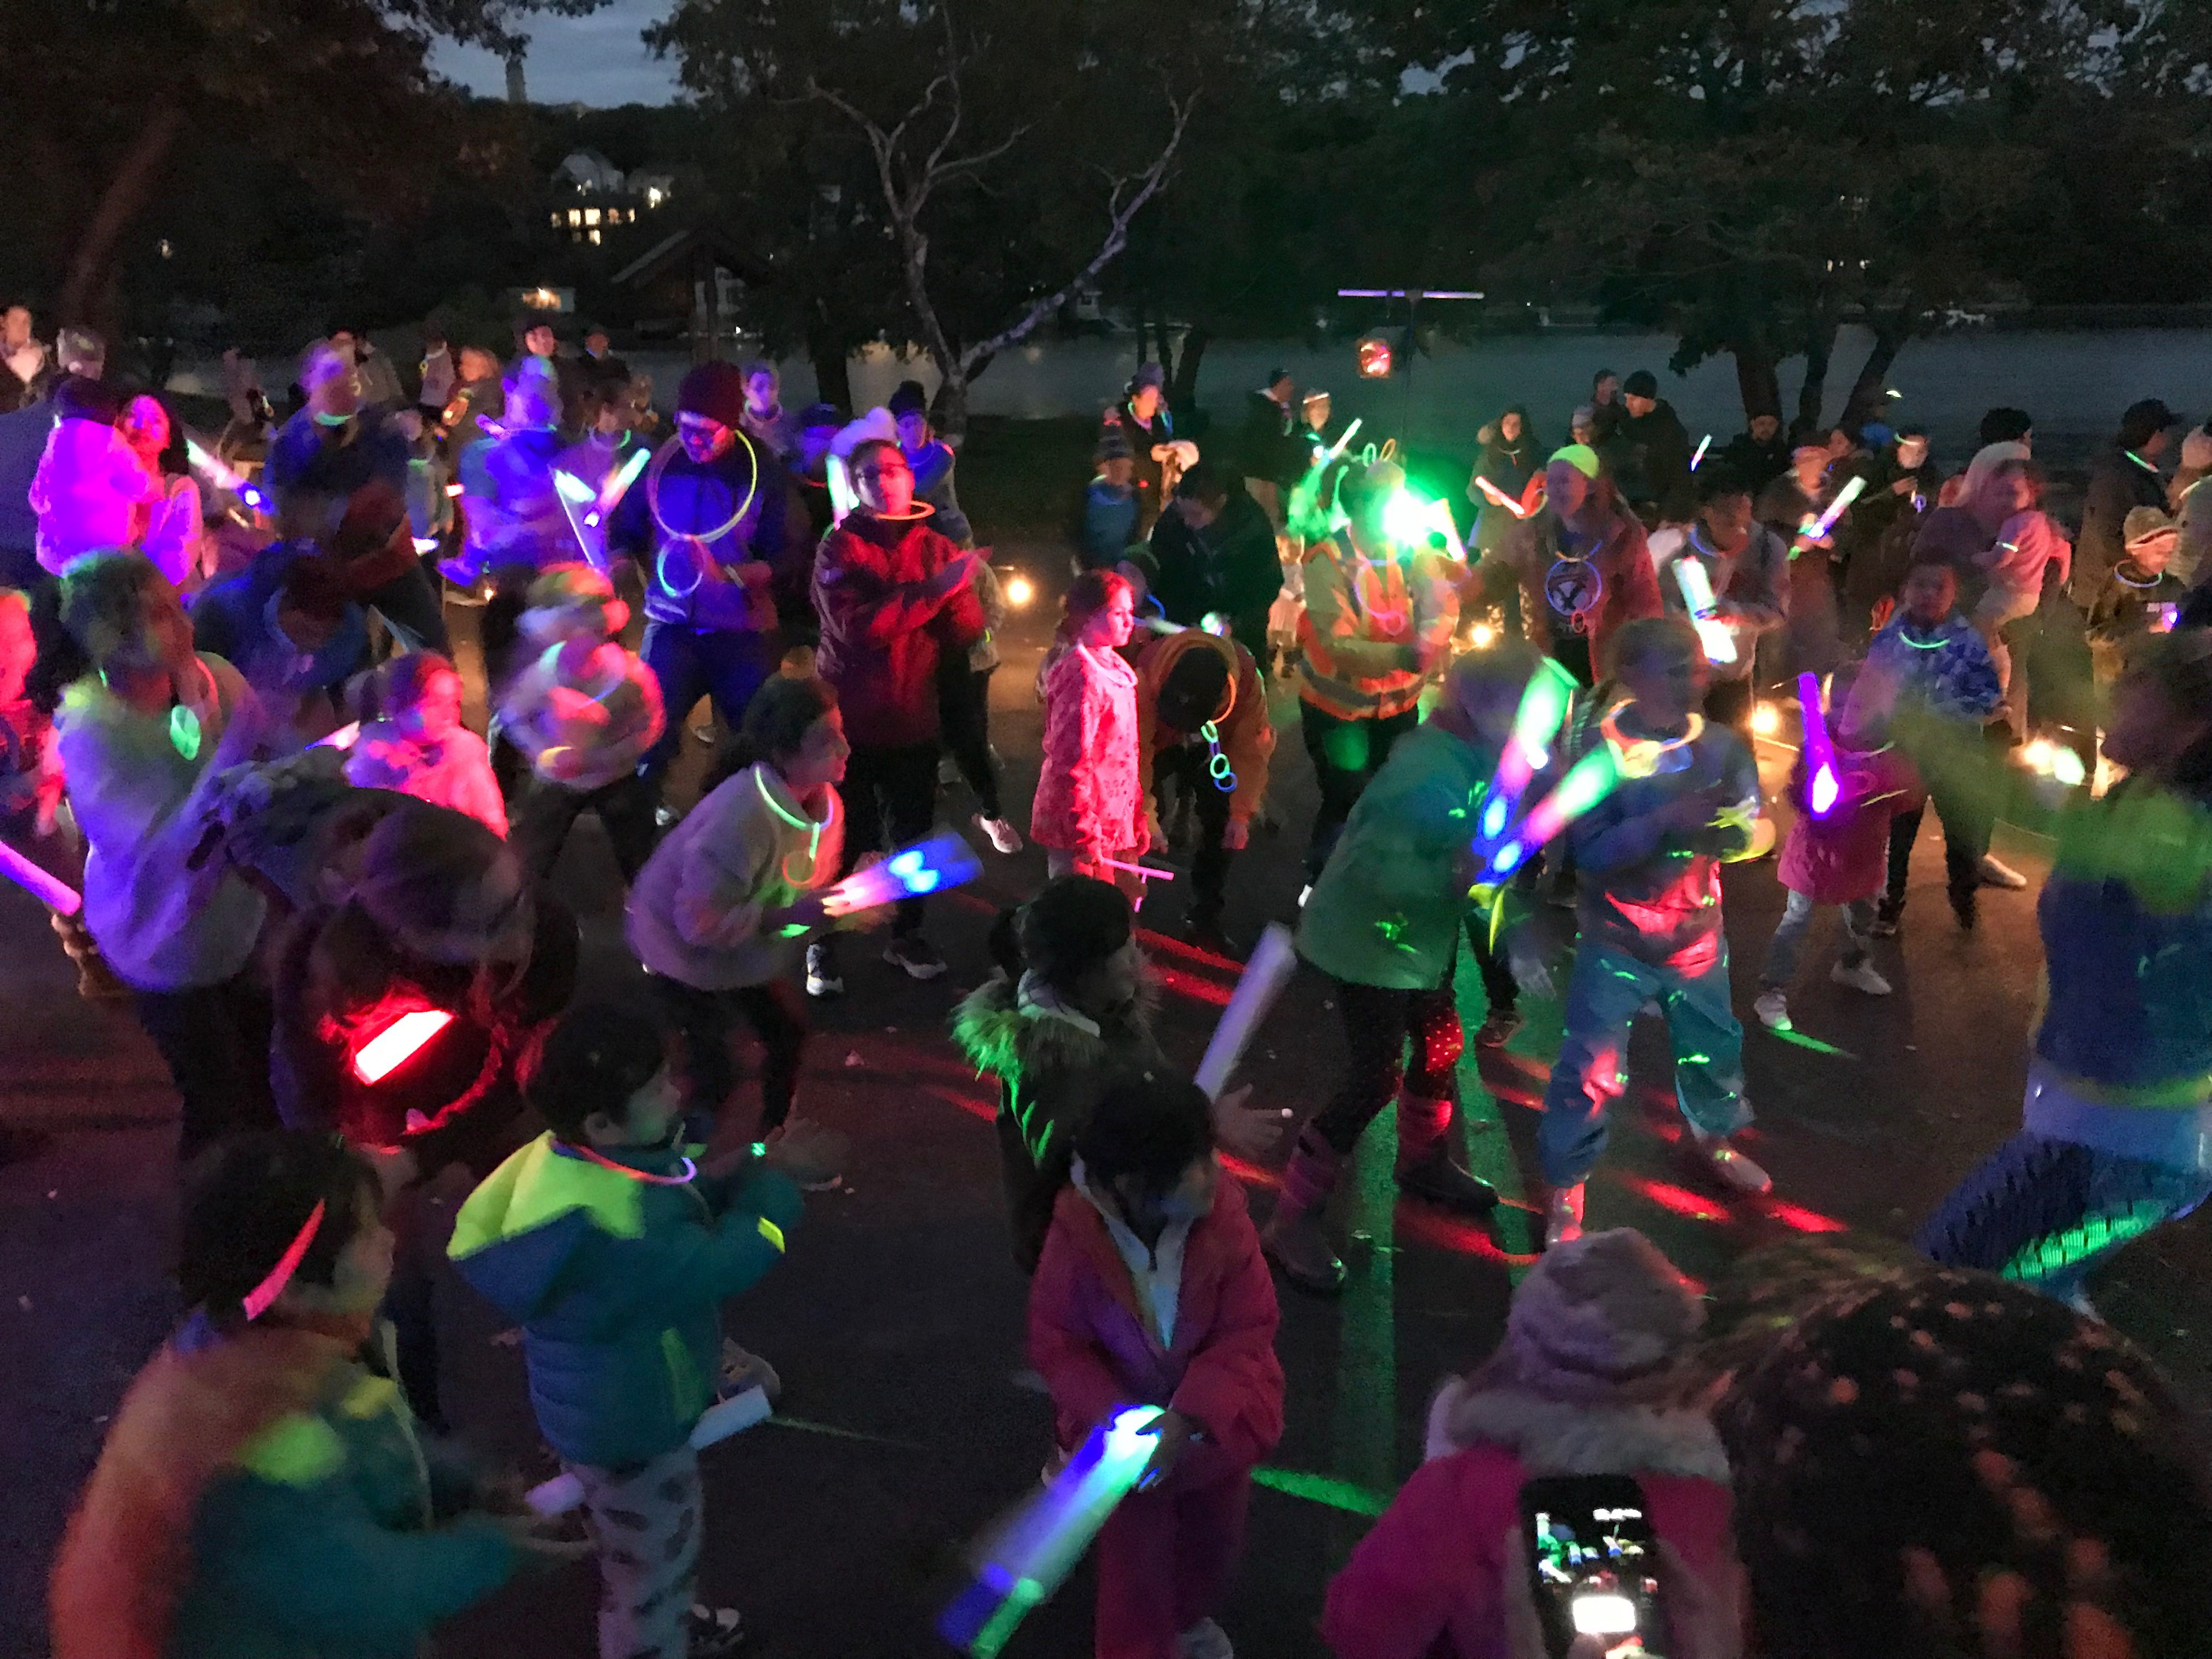 crowd dancing at Glow in the Park event